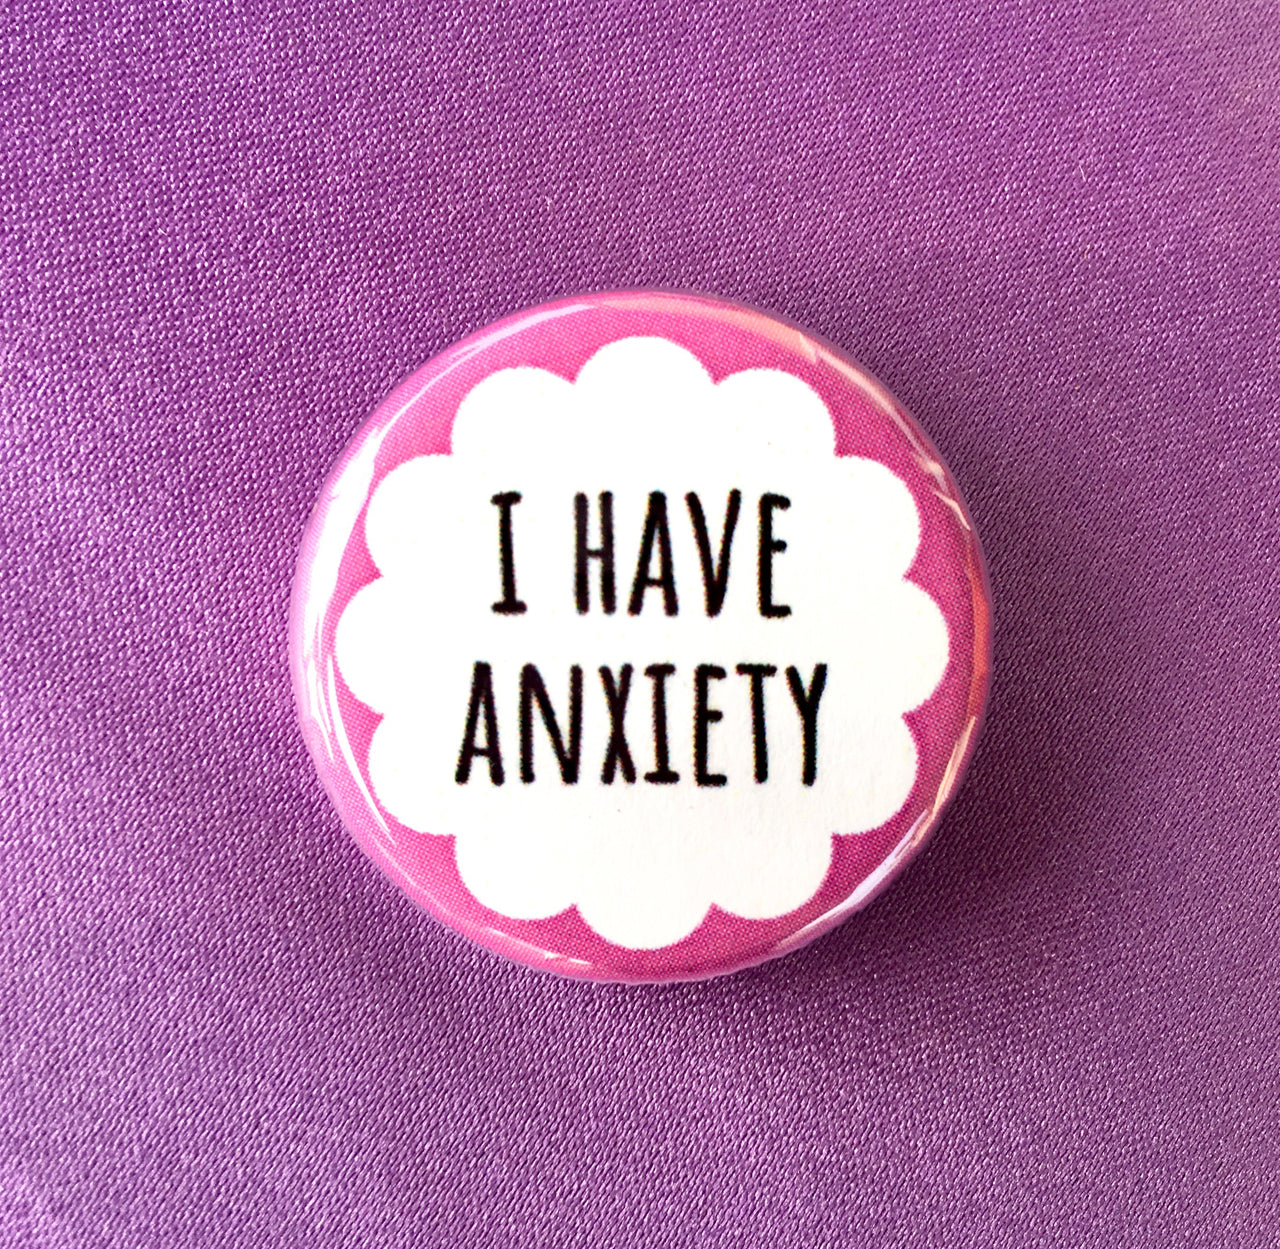 I have anxiety - Radical Buttons